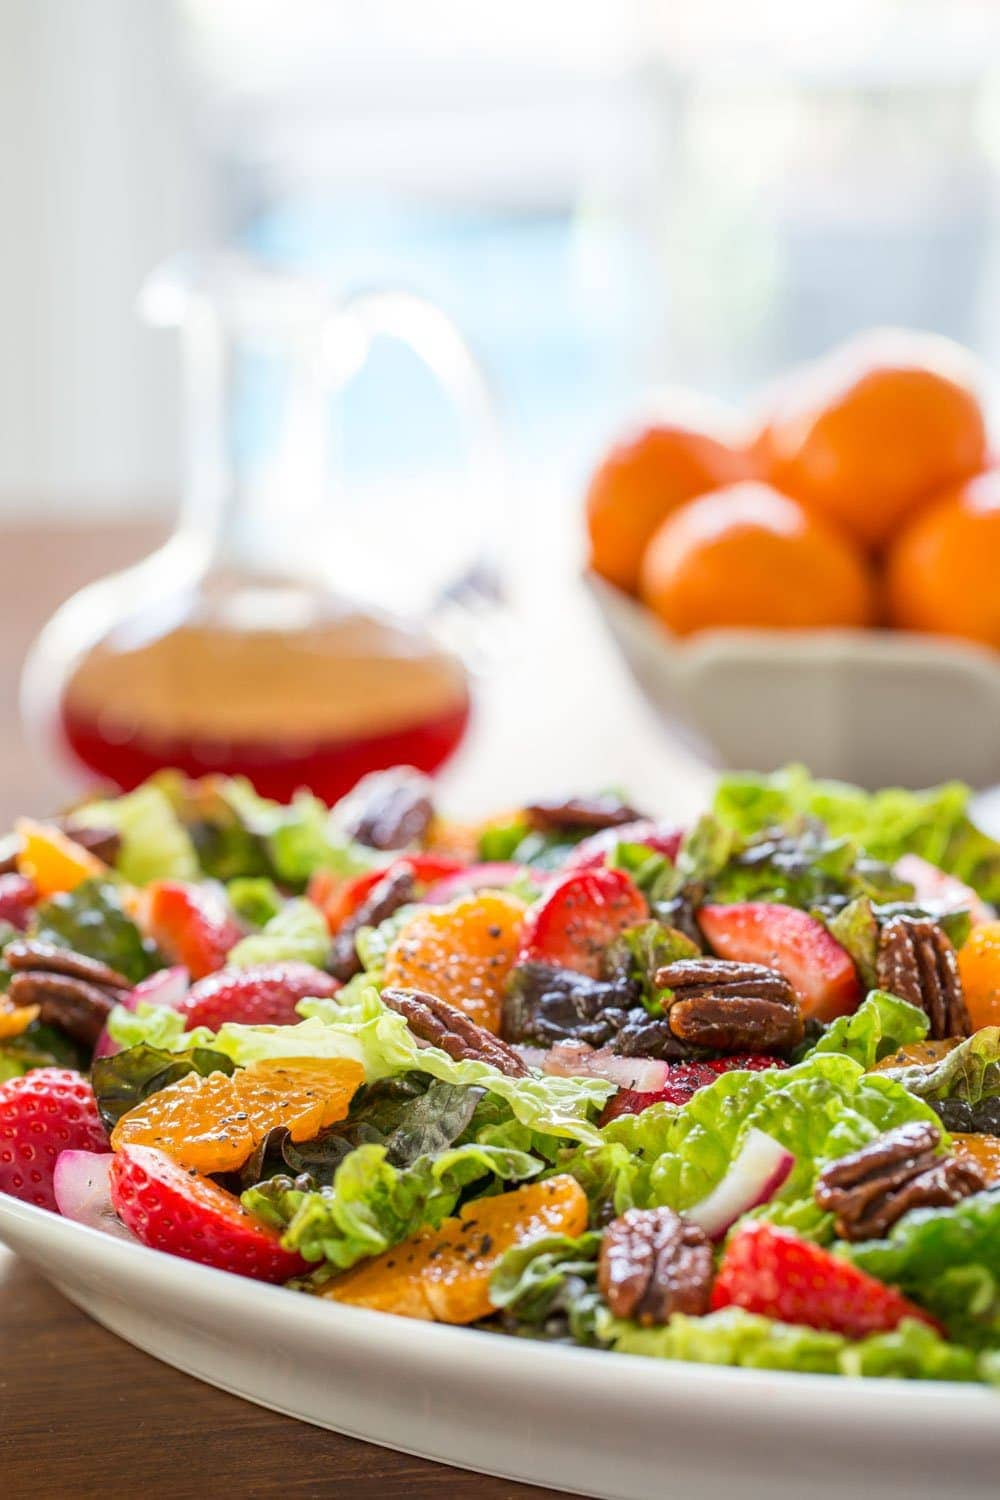 Strawberry Clementine Salad with Red Wine Vinegar Dressing - With an easy, sweet, tangy dressing and a topping of caramelized pecans, this delicious, fresh salad will add a splash of pizzazz to any meal. thecafesucrefarine.com